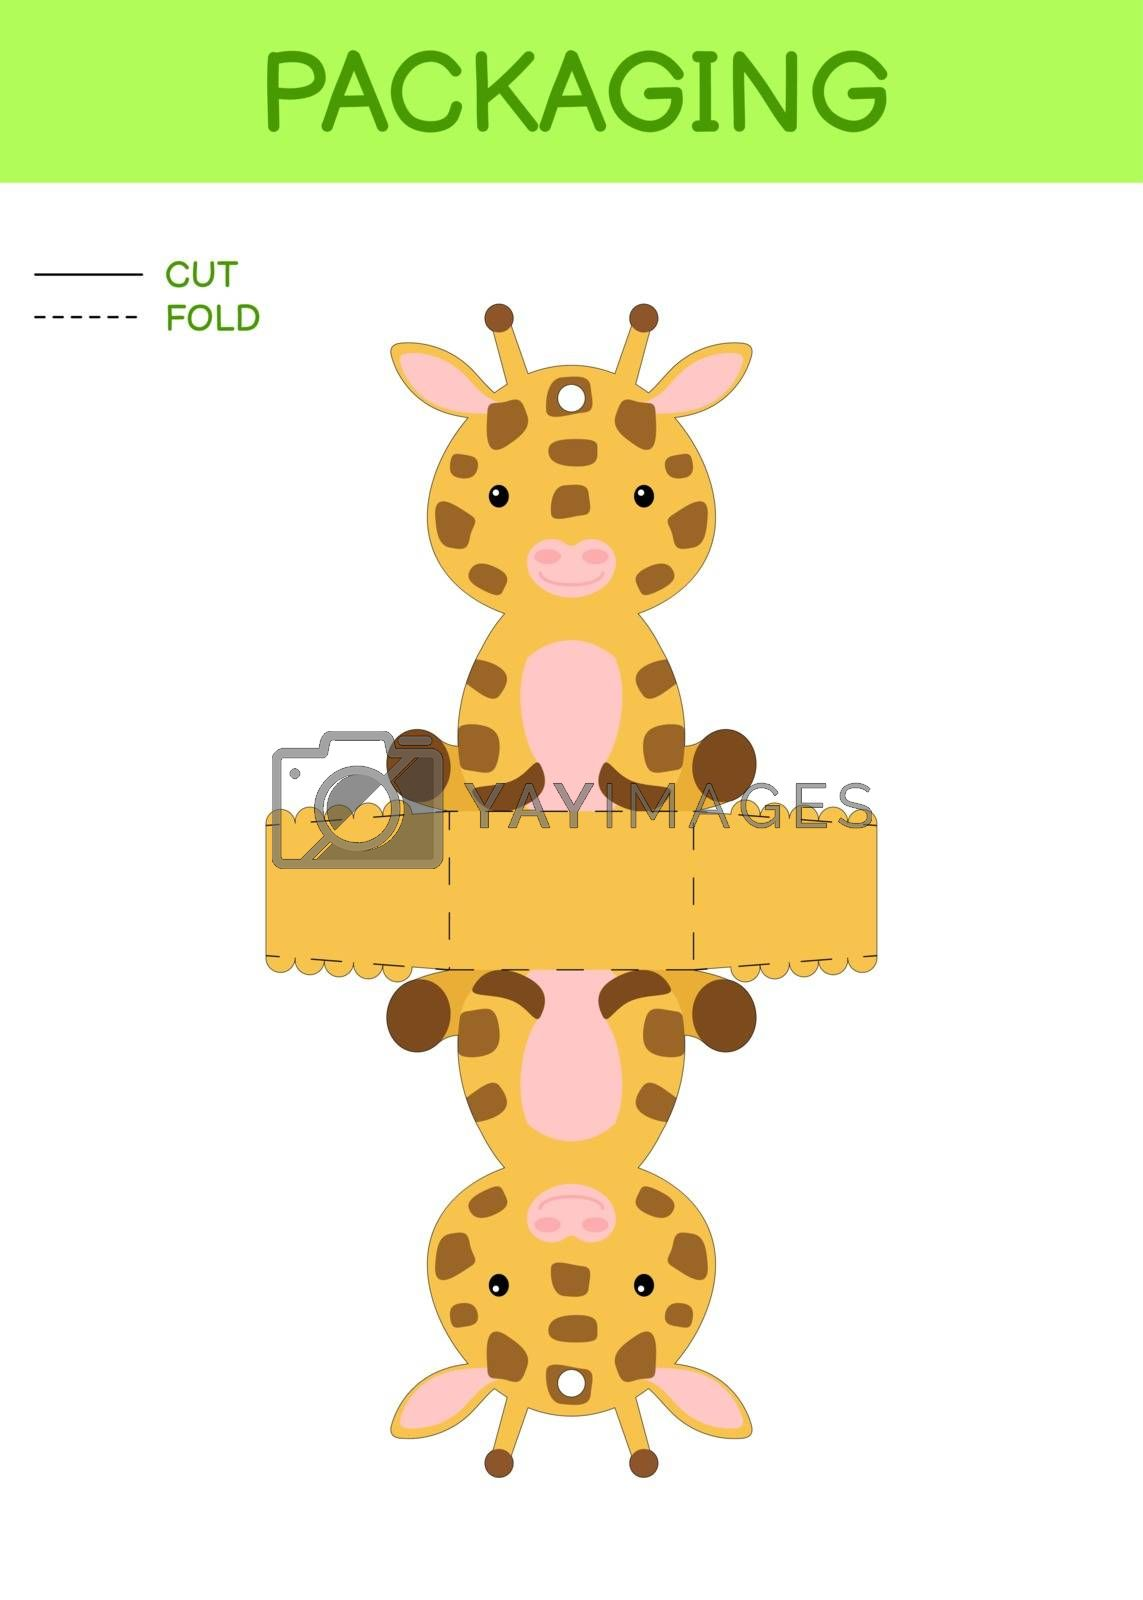 DIY party favor box die cut template design for birthdays, baby showers with cute giraffe for sweets, candies, small presents. Printable color scheme. Print, cut out, fold, glue. Vector illustration